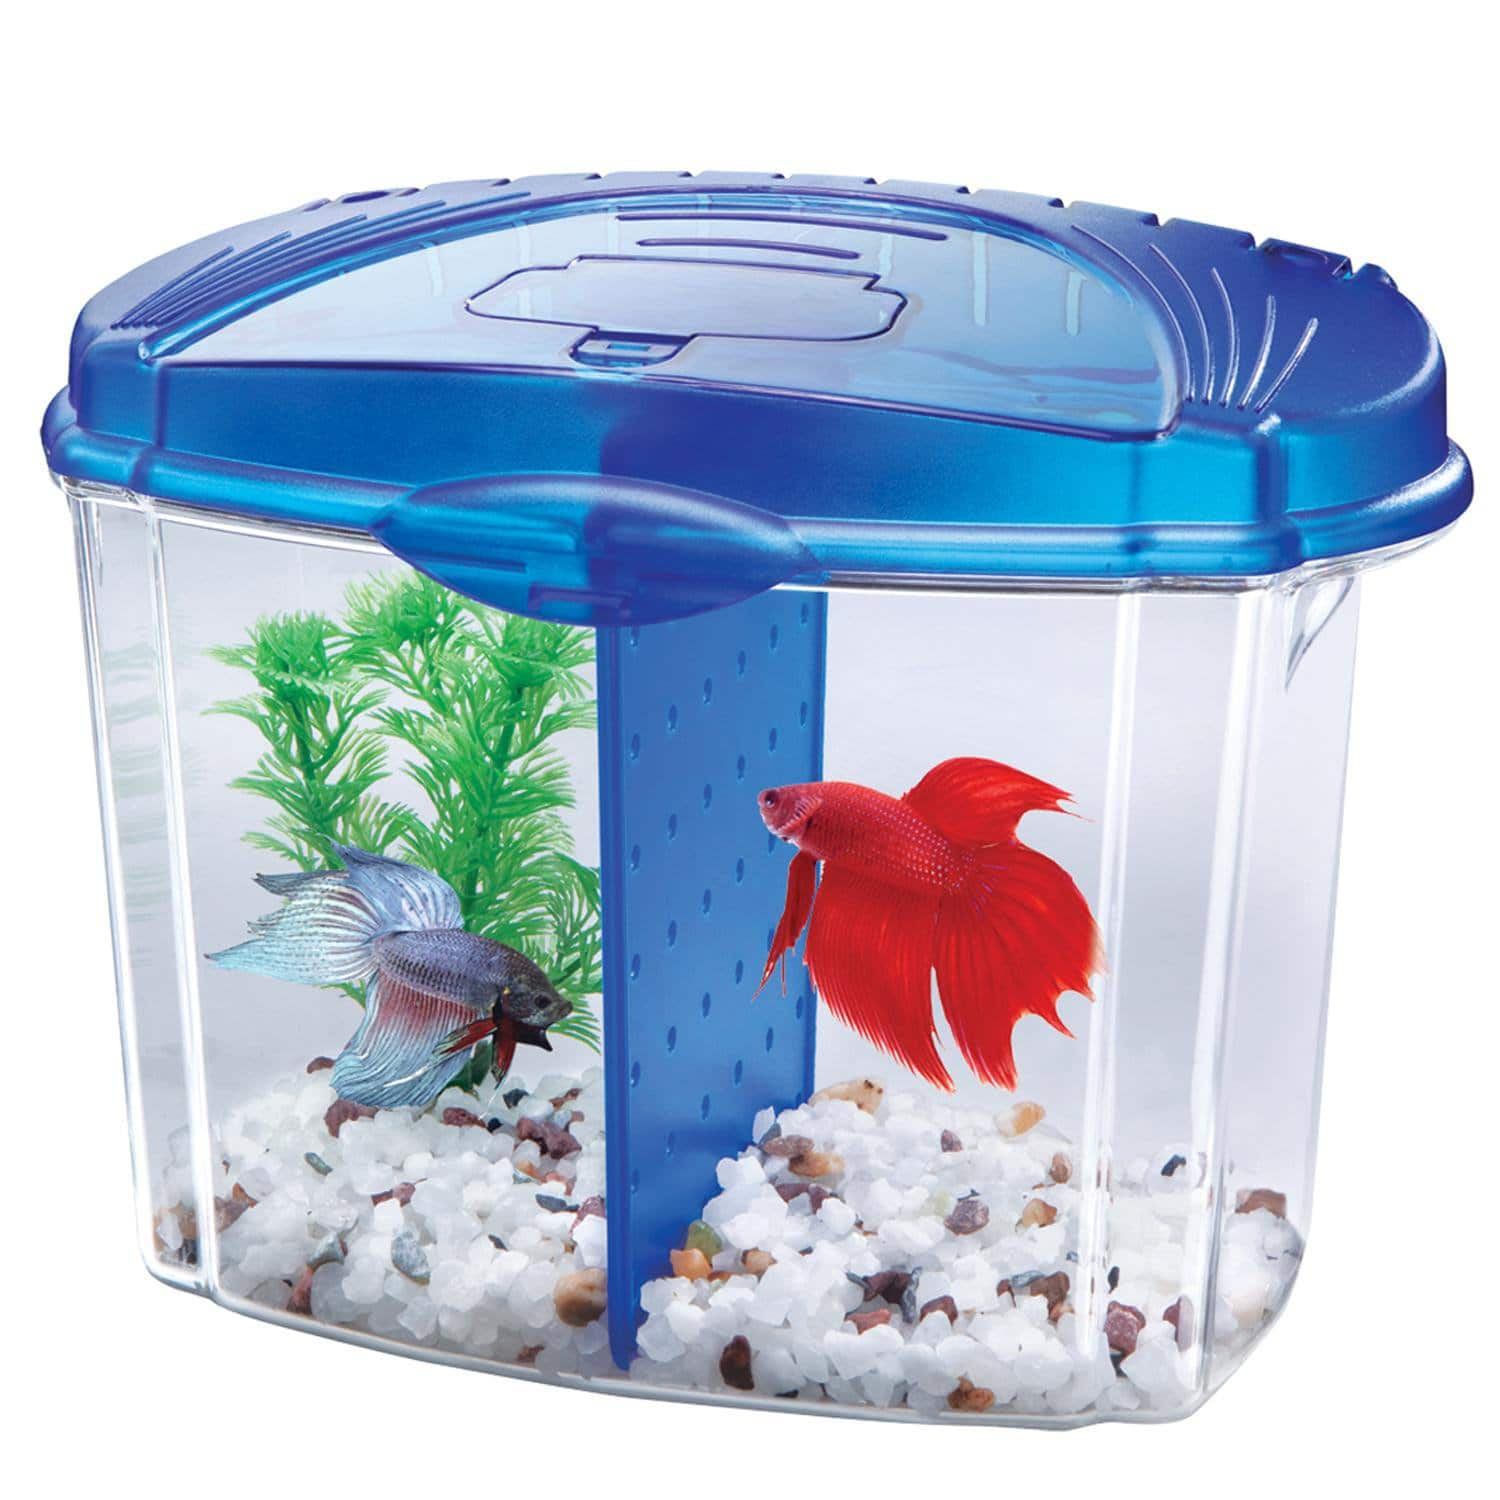 Petco 39 s dollar a gallon aquarium fish tank sale starts for 55 gallon fish tank petco